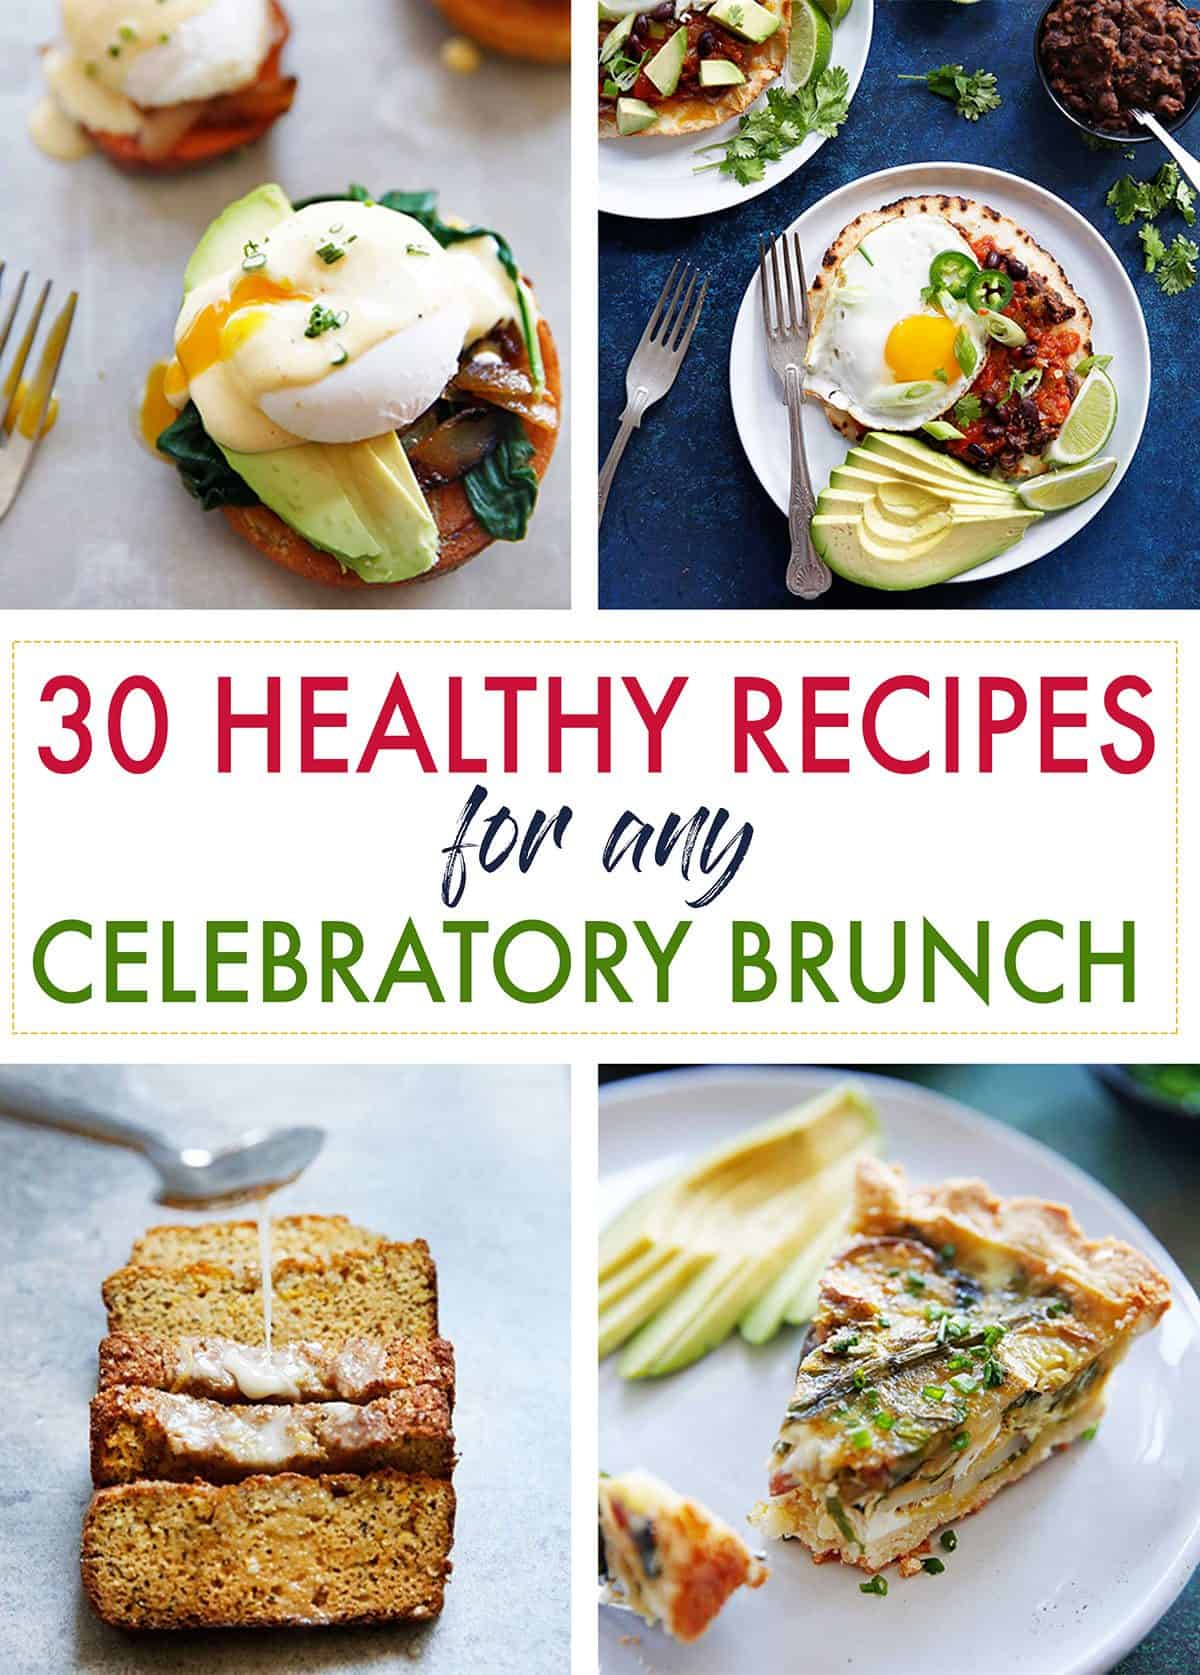 30 Healthy Recipes For A Celebratory Brunch Lexi S Clean Kitchen